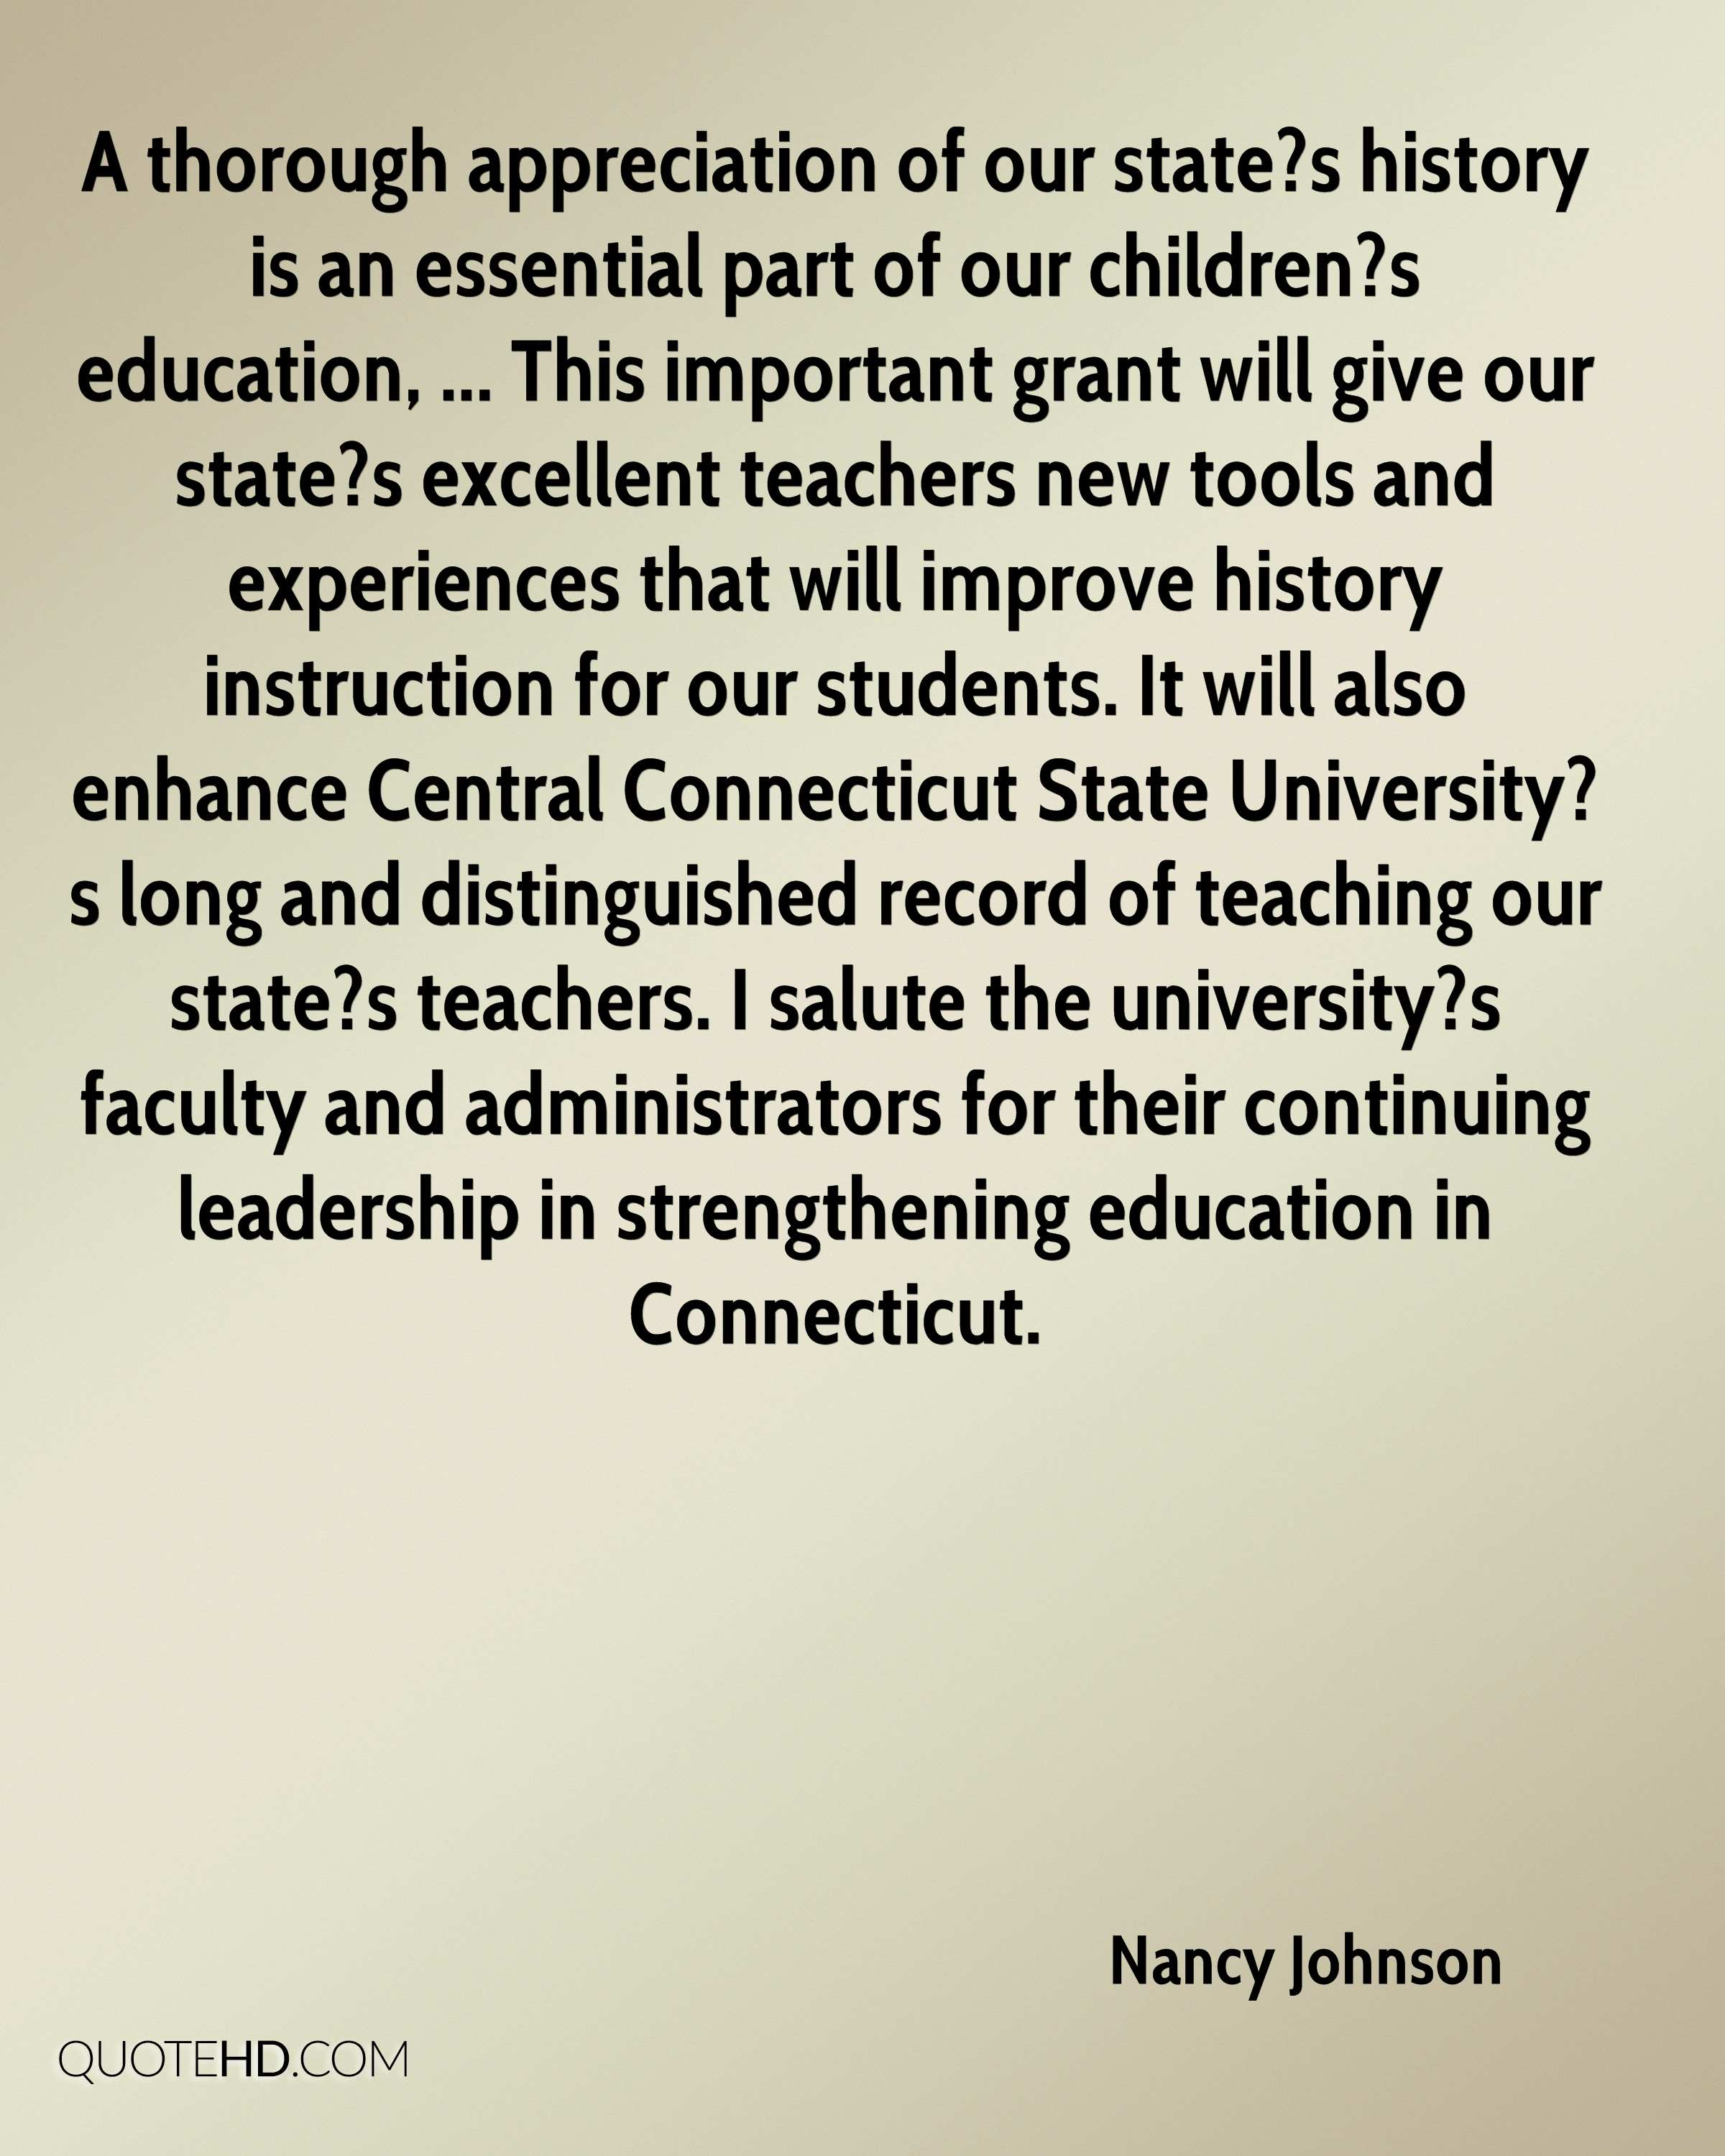 A thorough appreciation of our state?s history is an essential part of our children?s education, ... This important grant will give our state?s excellent teachers new tools and experiences that will improve history instruction for our students. It will also enhance Central Connecticut State University?s long and distinguished record of teaching our state?s teachers. I salute the university?s faculty and administrators for their continuing leadership in strengthening education in Connecticut.